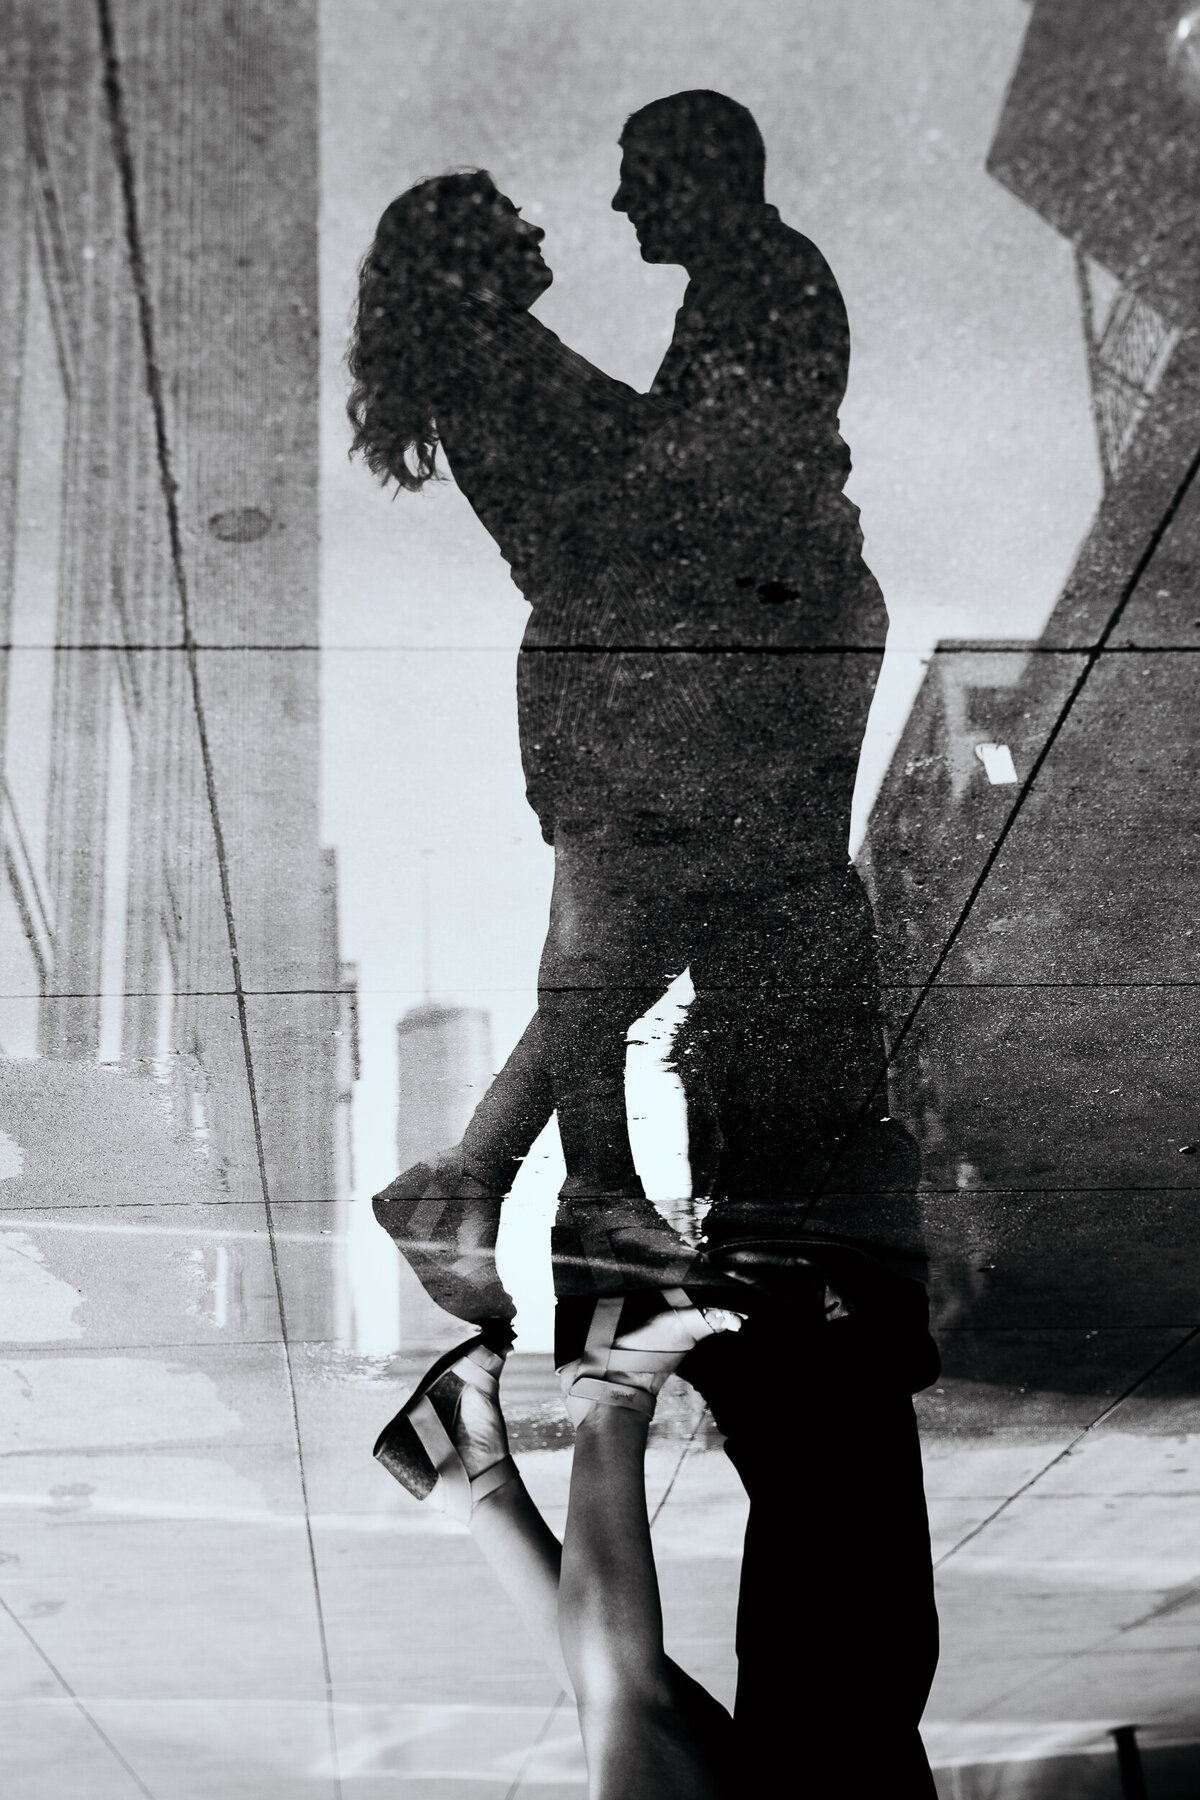 chicago-couple-puddle-reflection-black-and-white